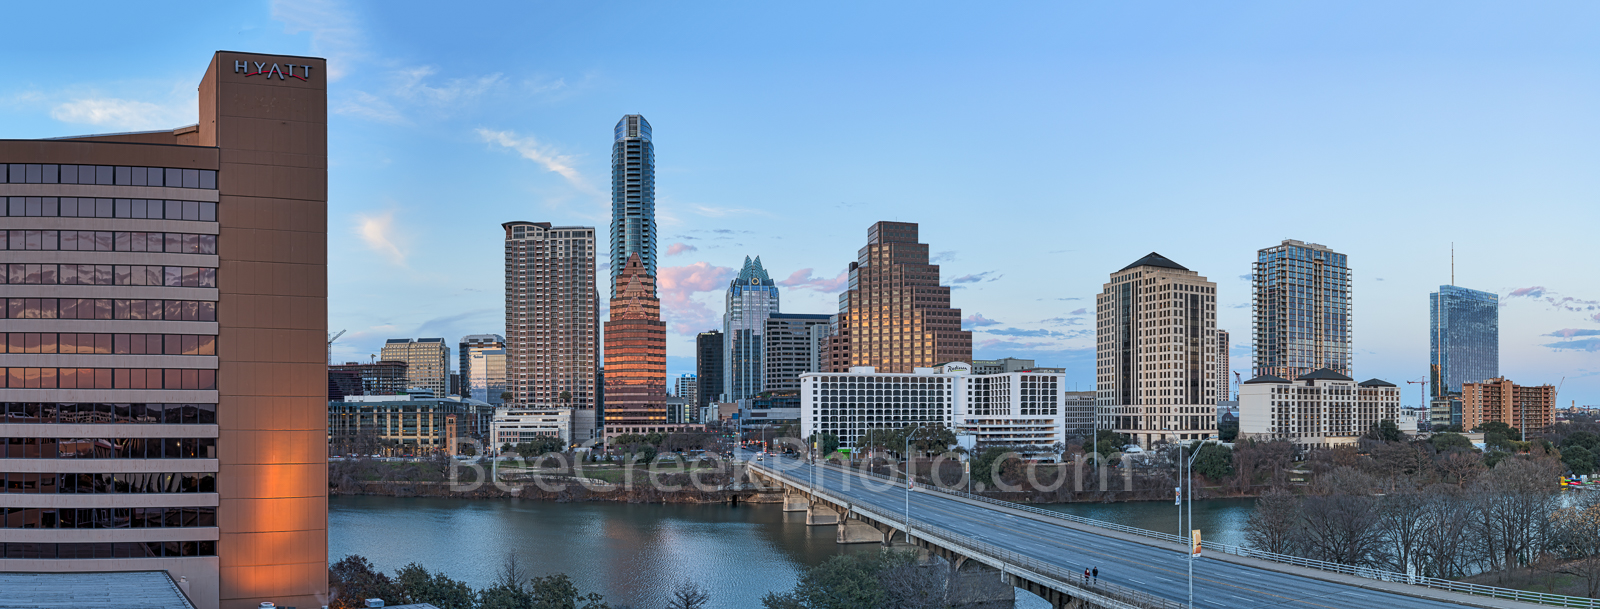 Austin Sunset Skyline Pano, Austin skyline,  Austin, Congress, pano, panorama, panoramic, Lady Bird Lake, sky, pink, Capitol, texas, state government, restaurants, recreation, trails, 10K's, Universit